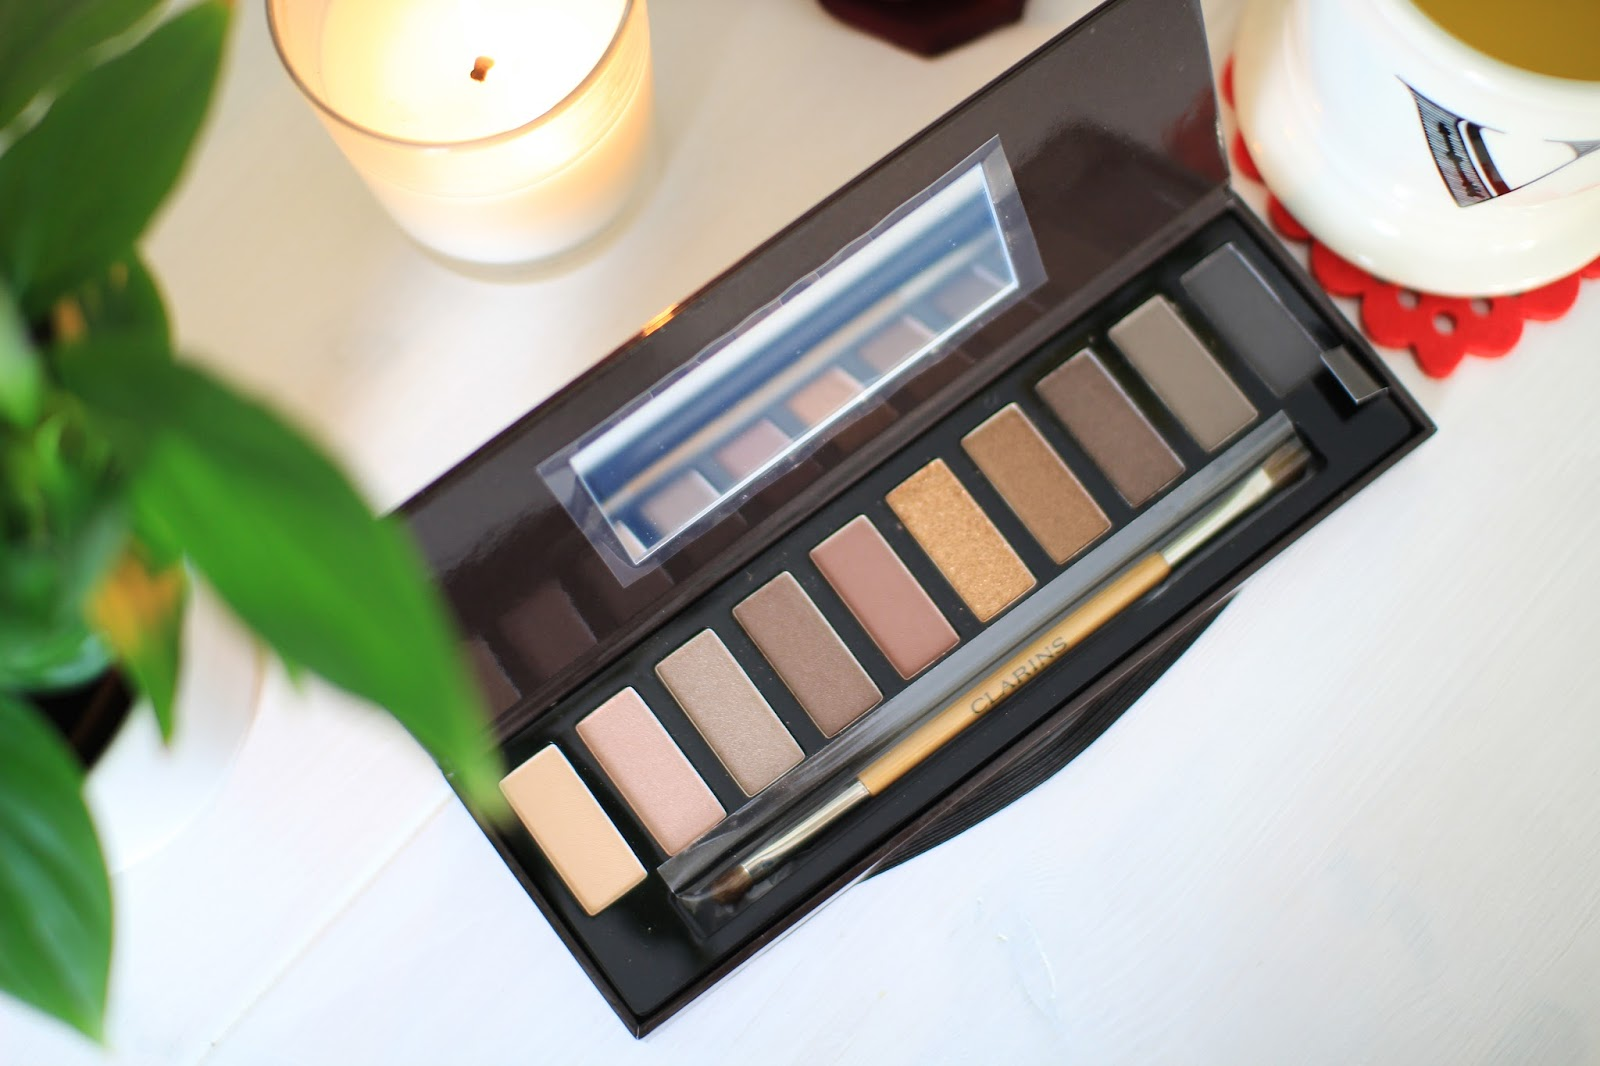 The Clarins Essentials Palette